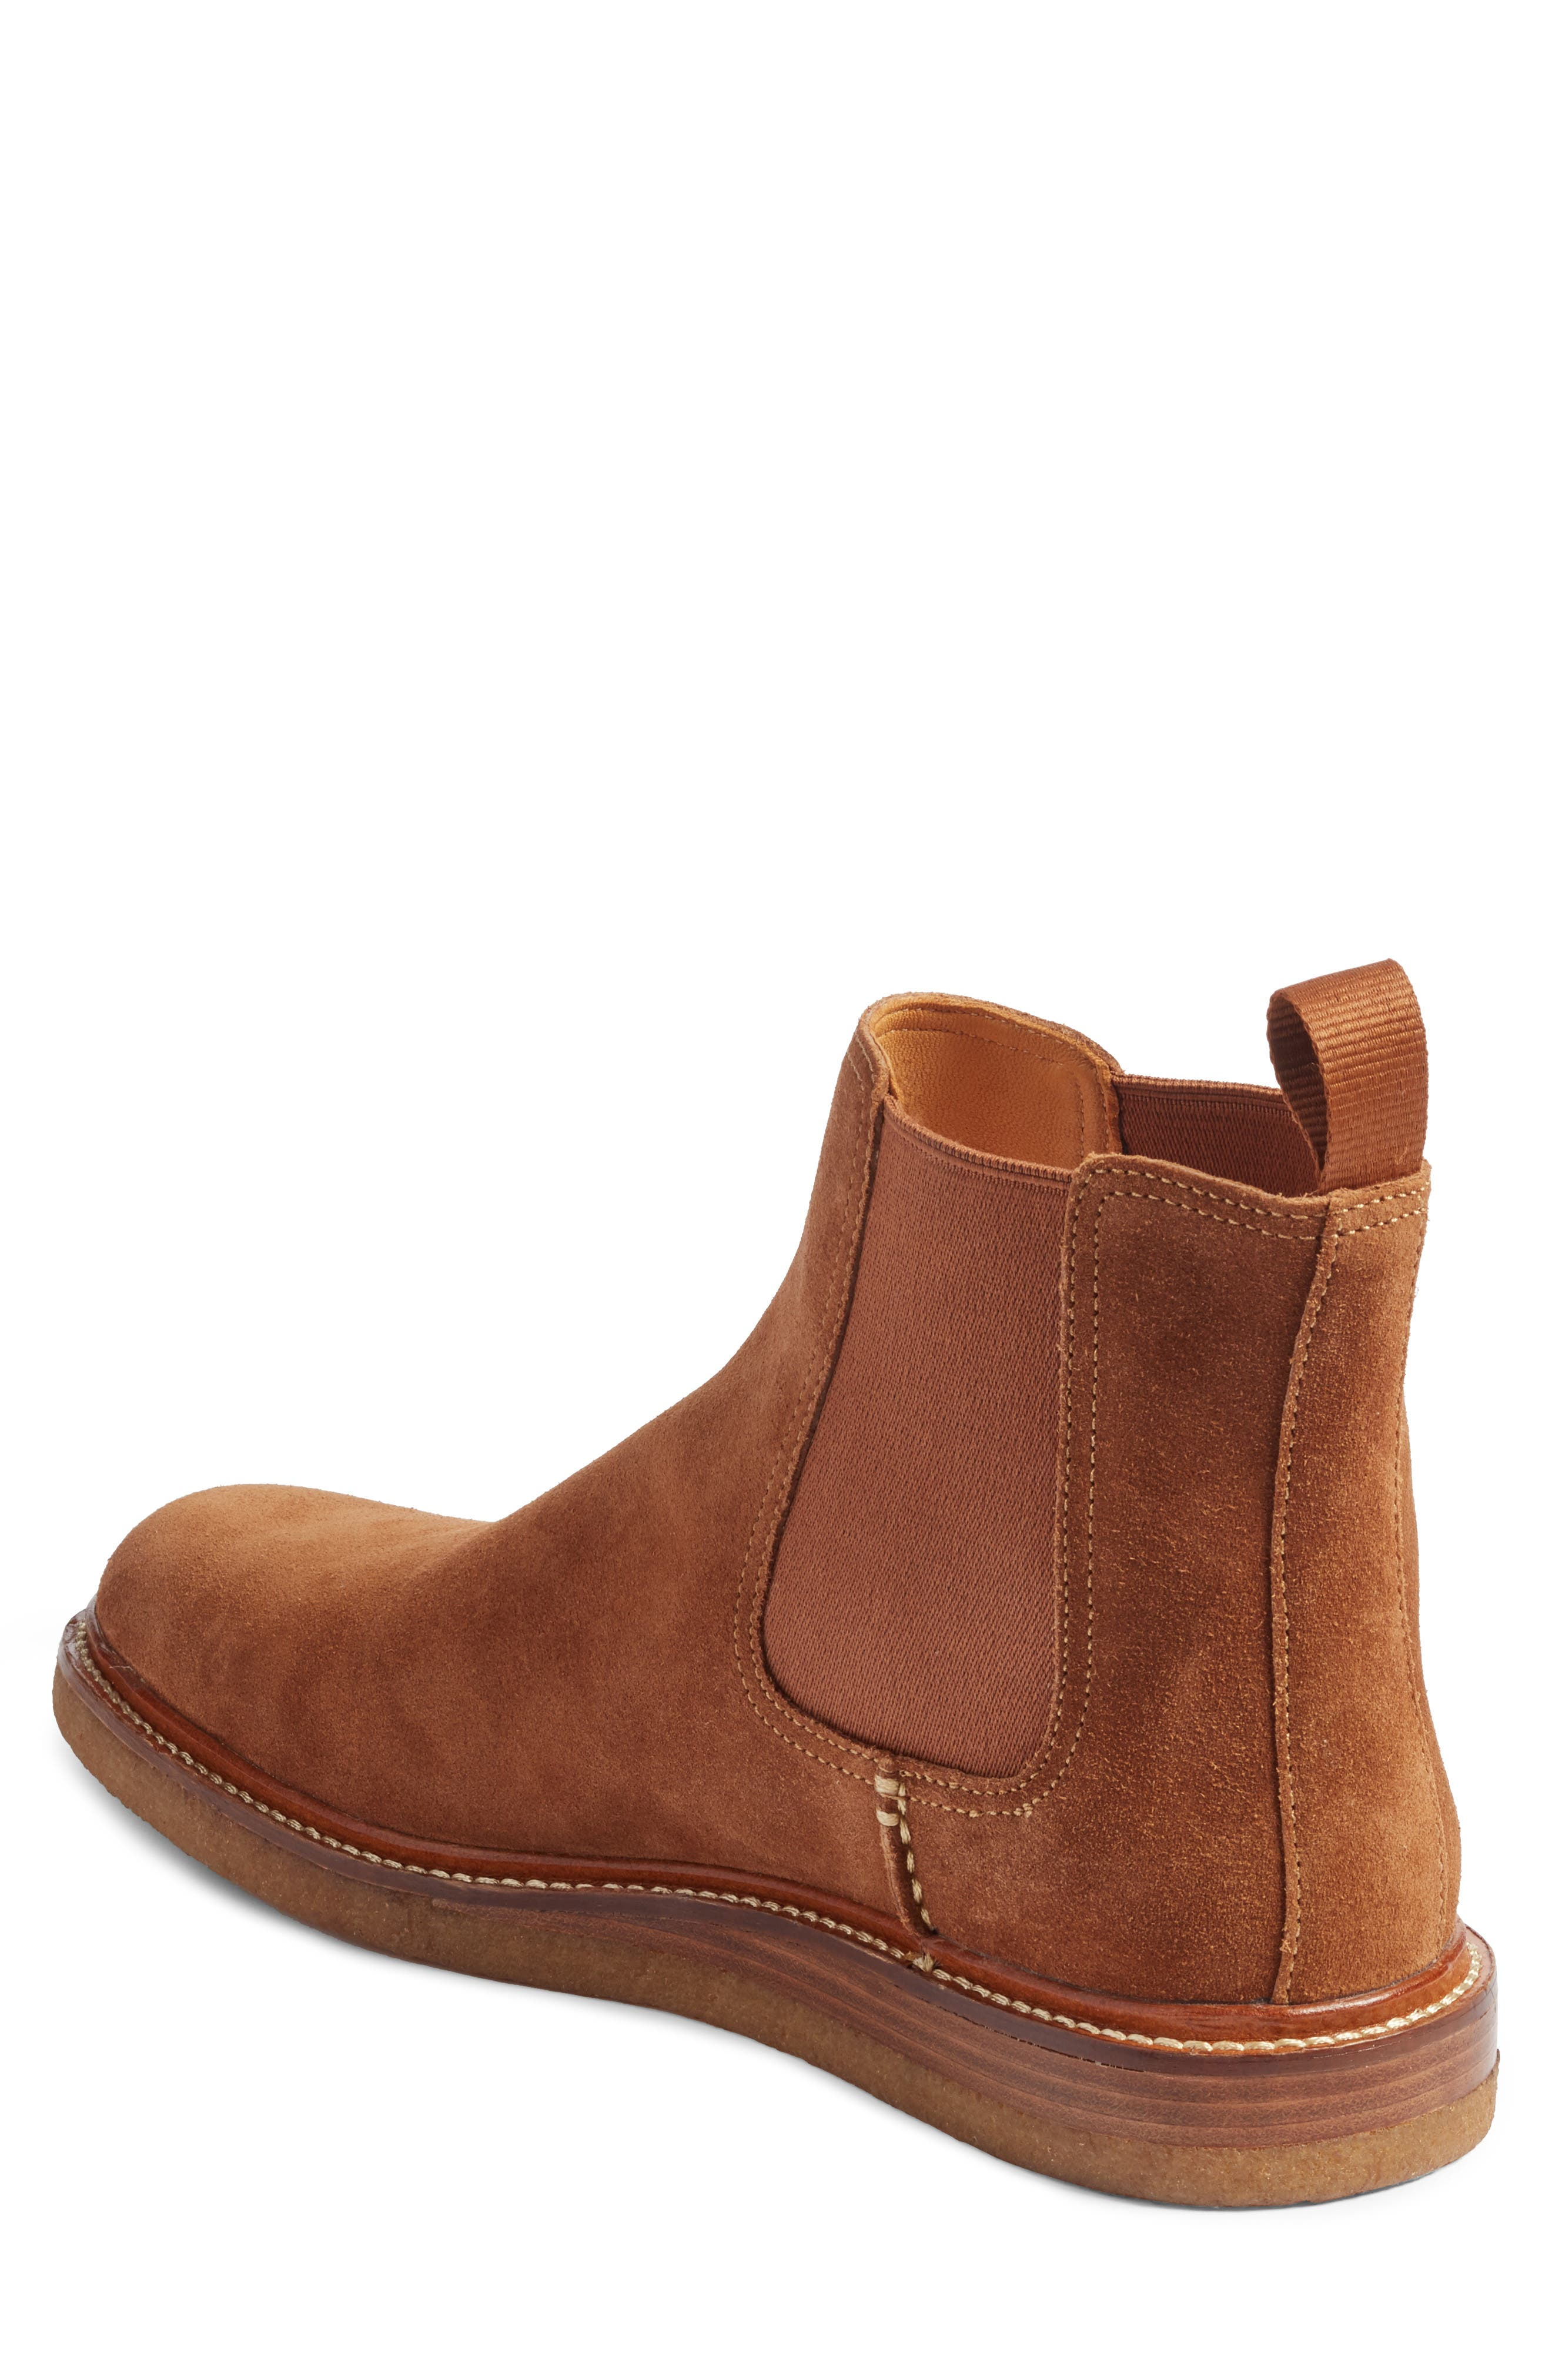 Leather Chelsea Boot,                             Alternate thumbnail 4, color,